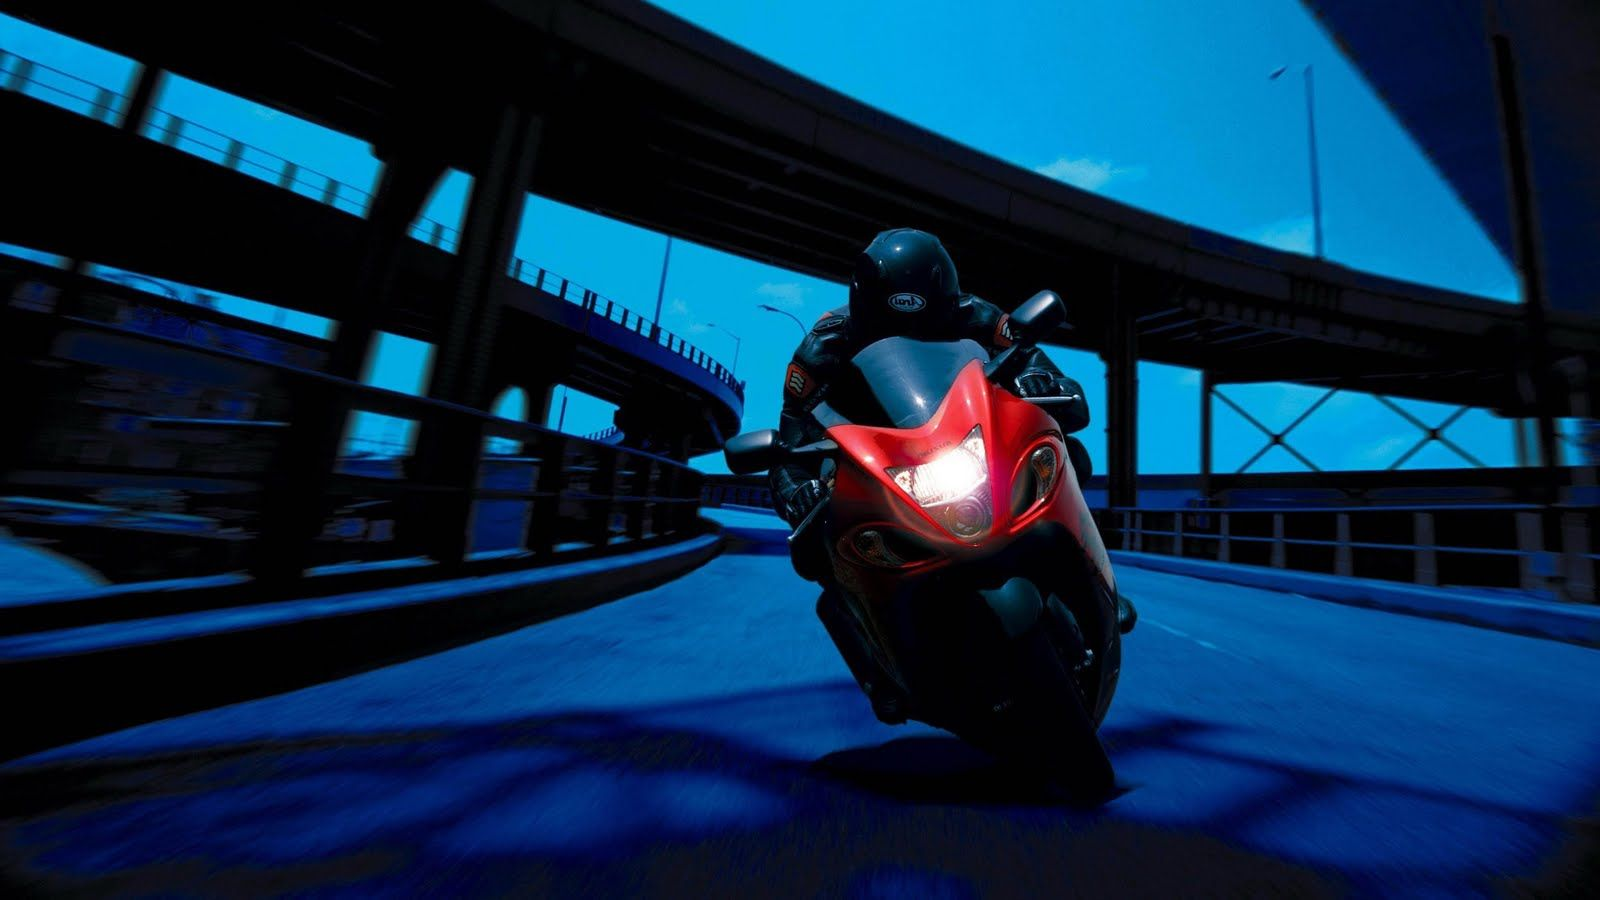 Motorcycle Wallpapers Backgrounds Photos Images Stock